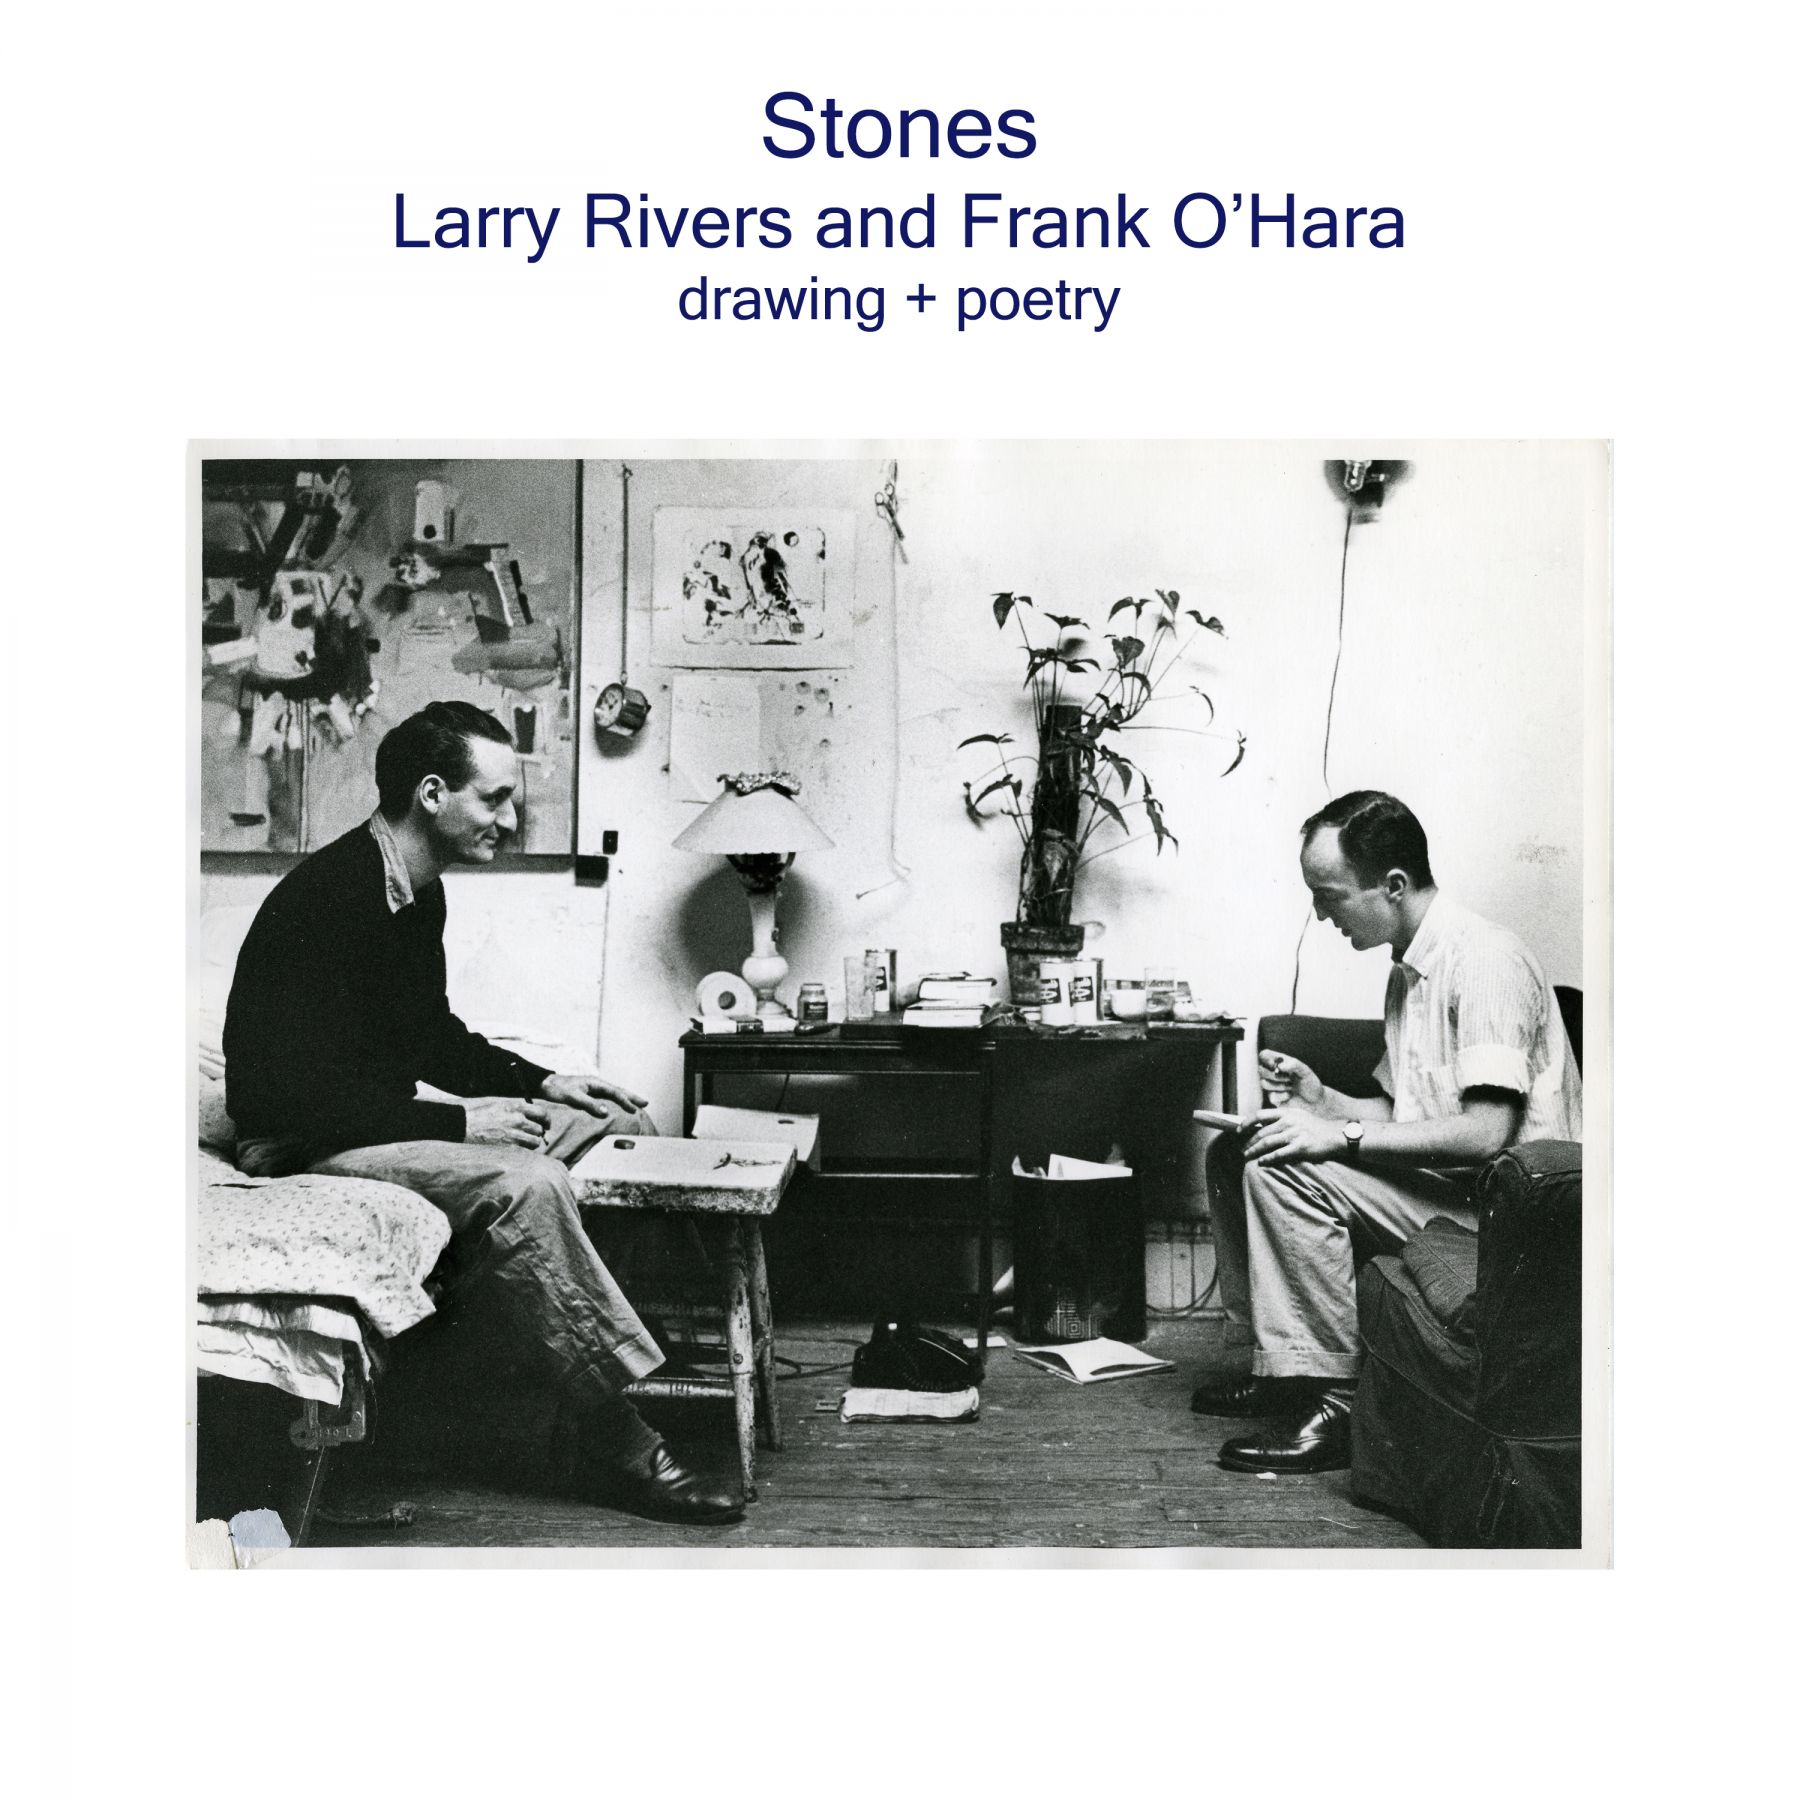 Larry Rivers and Frank O'Hara - Stones